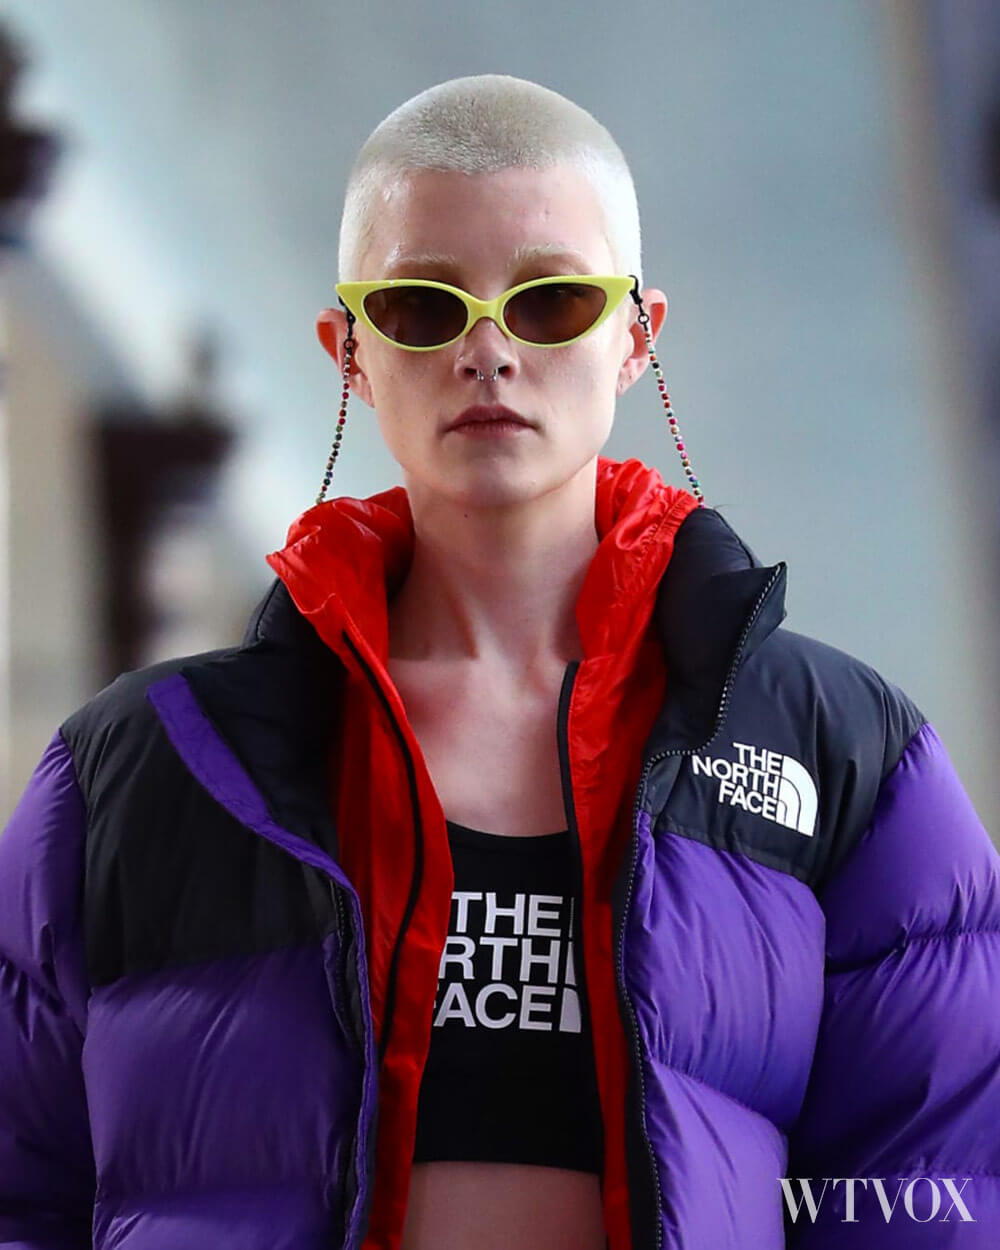 The North Face Outdoor clothing brand